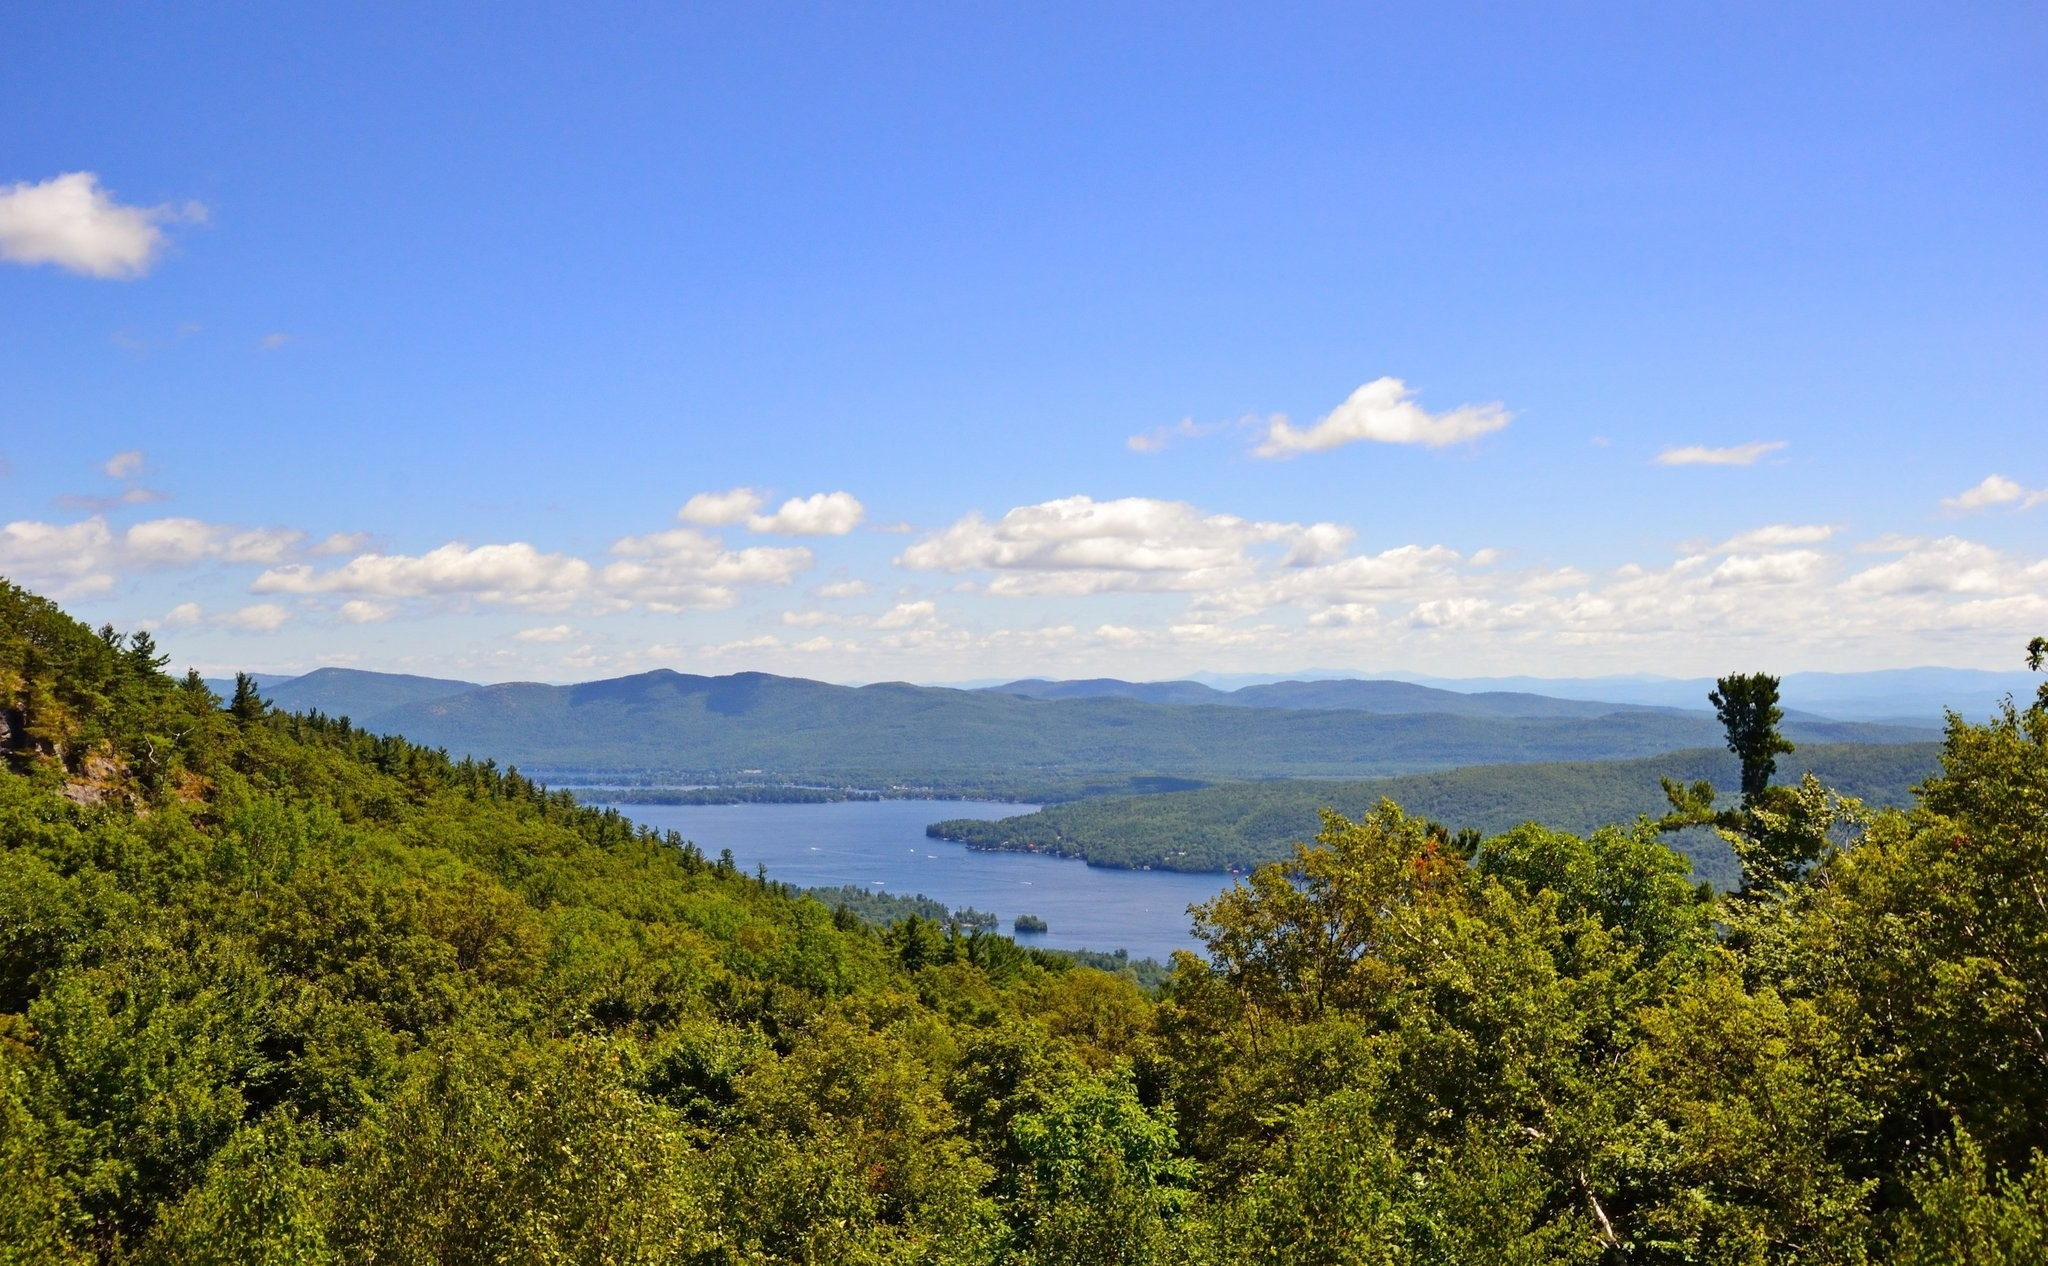 Prospect mountain · 75 smith st. Prospect Mountain Hiking Trails Picnicking And More Info Newyorkupstate Com